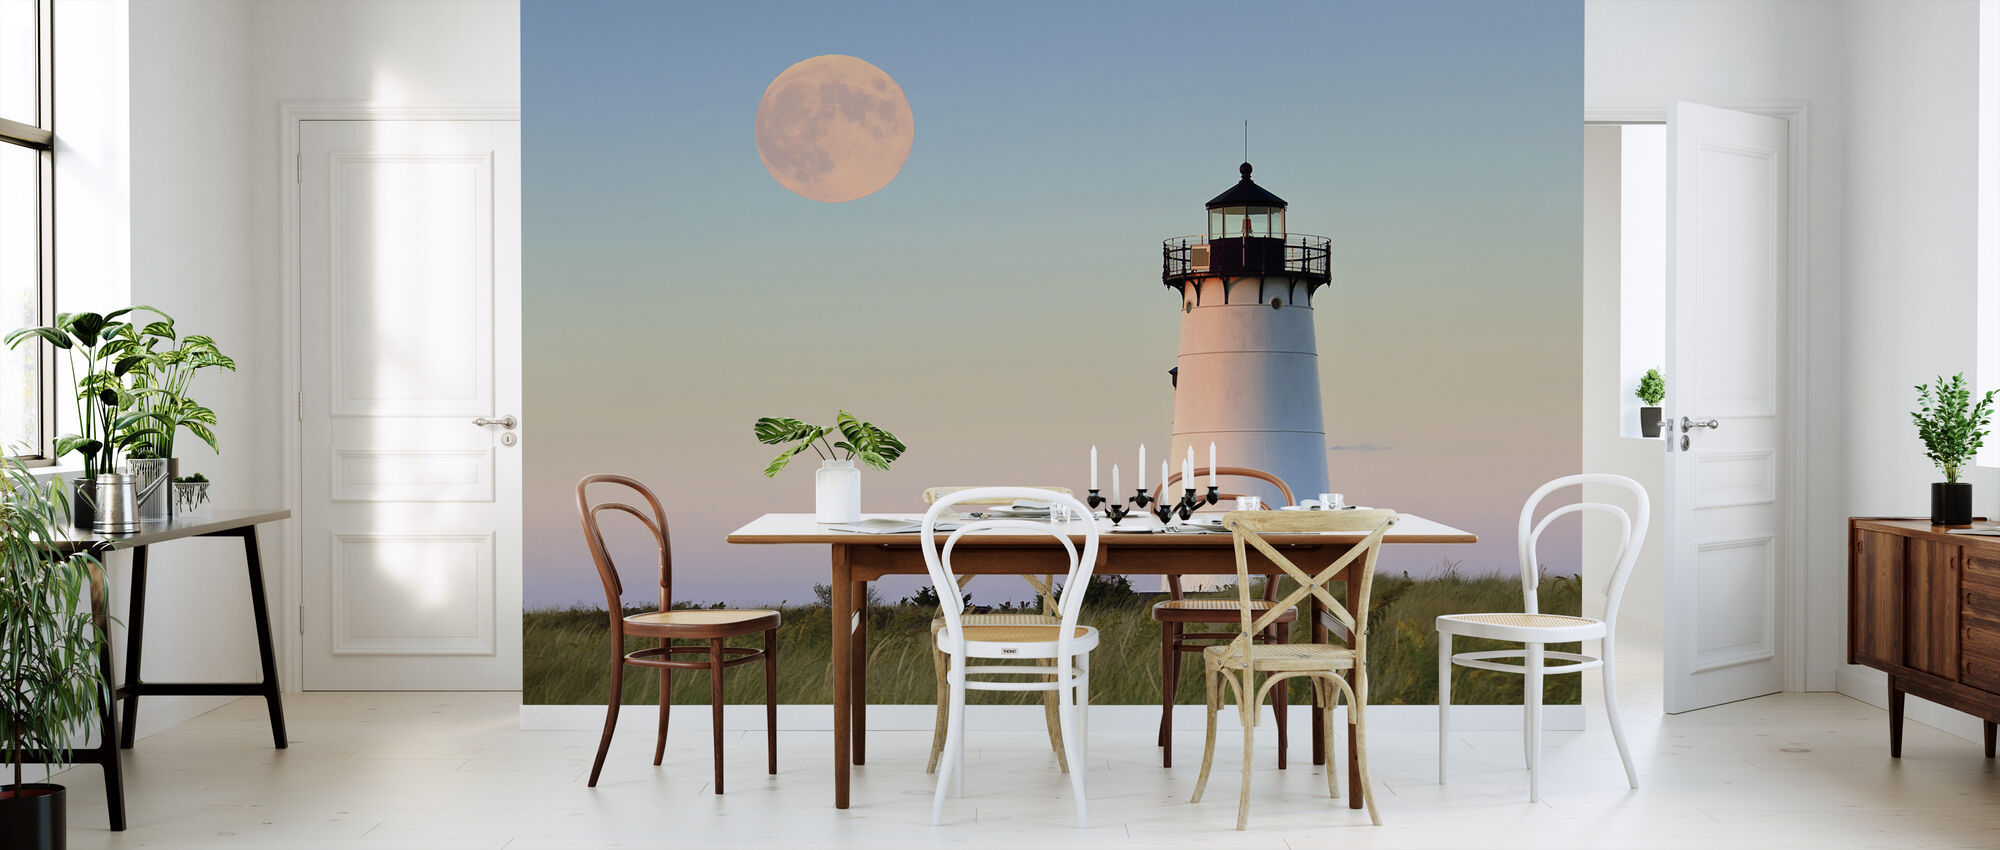 Moon Over Marthas Vineyard - Wallpaper - Kitchen